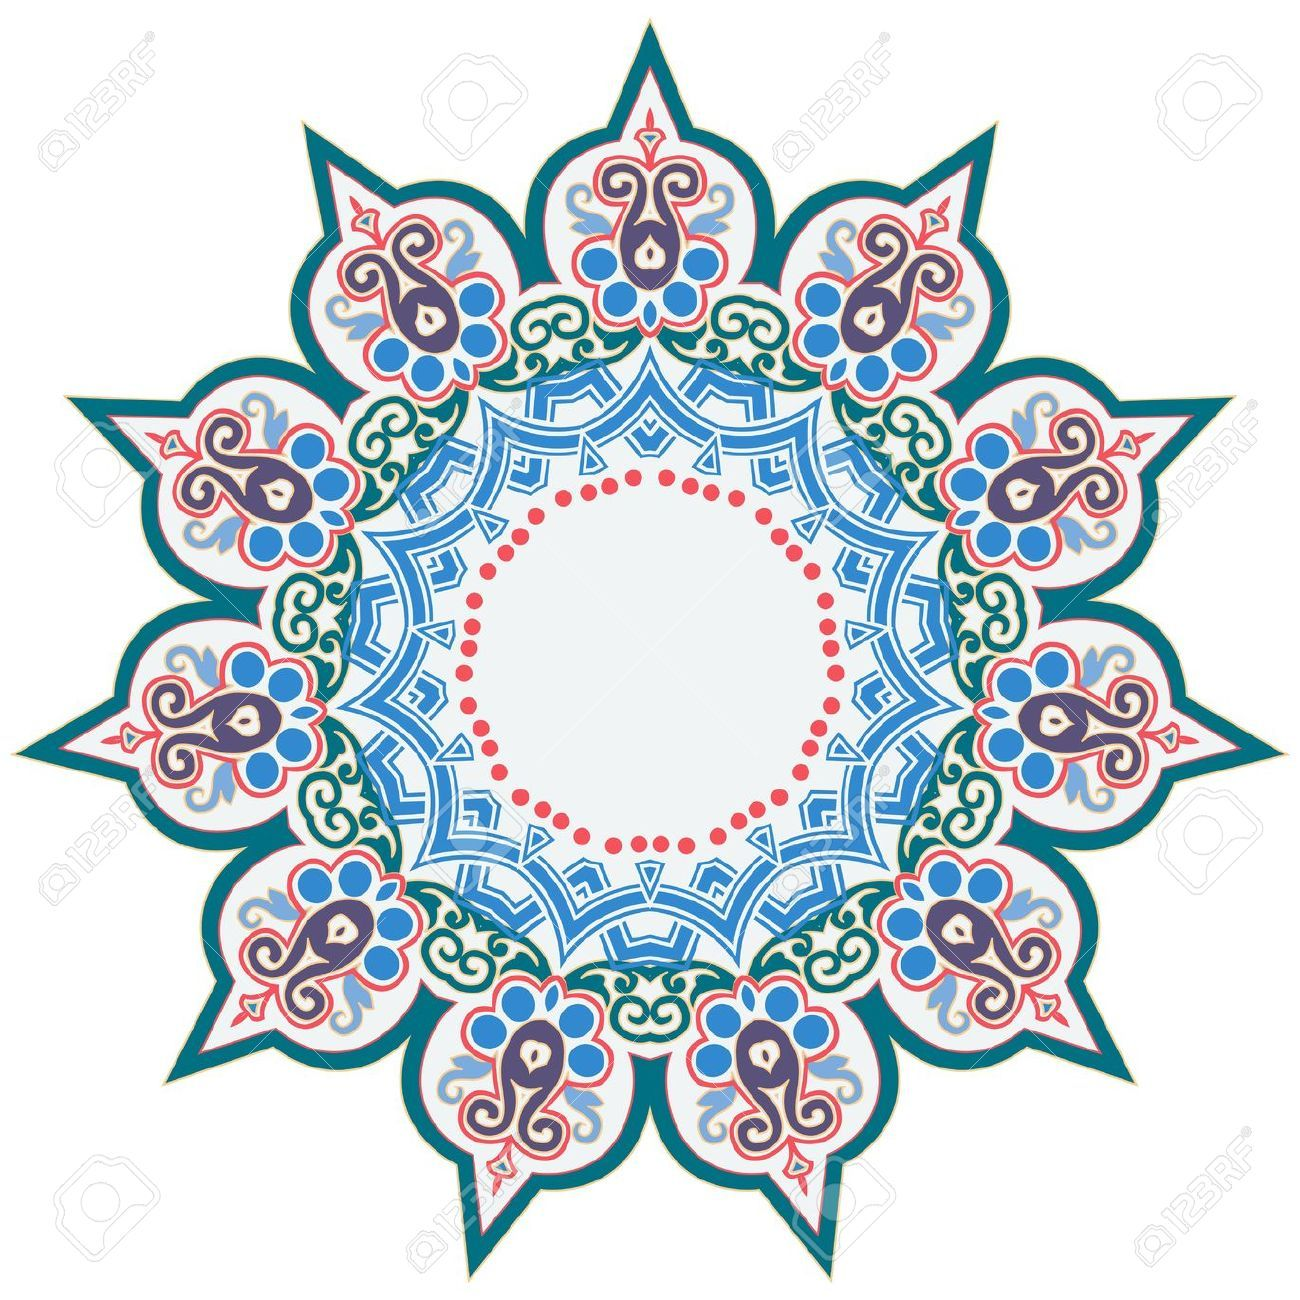 Islamic Vector at GetDrawings com | Free for personal use Islamic